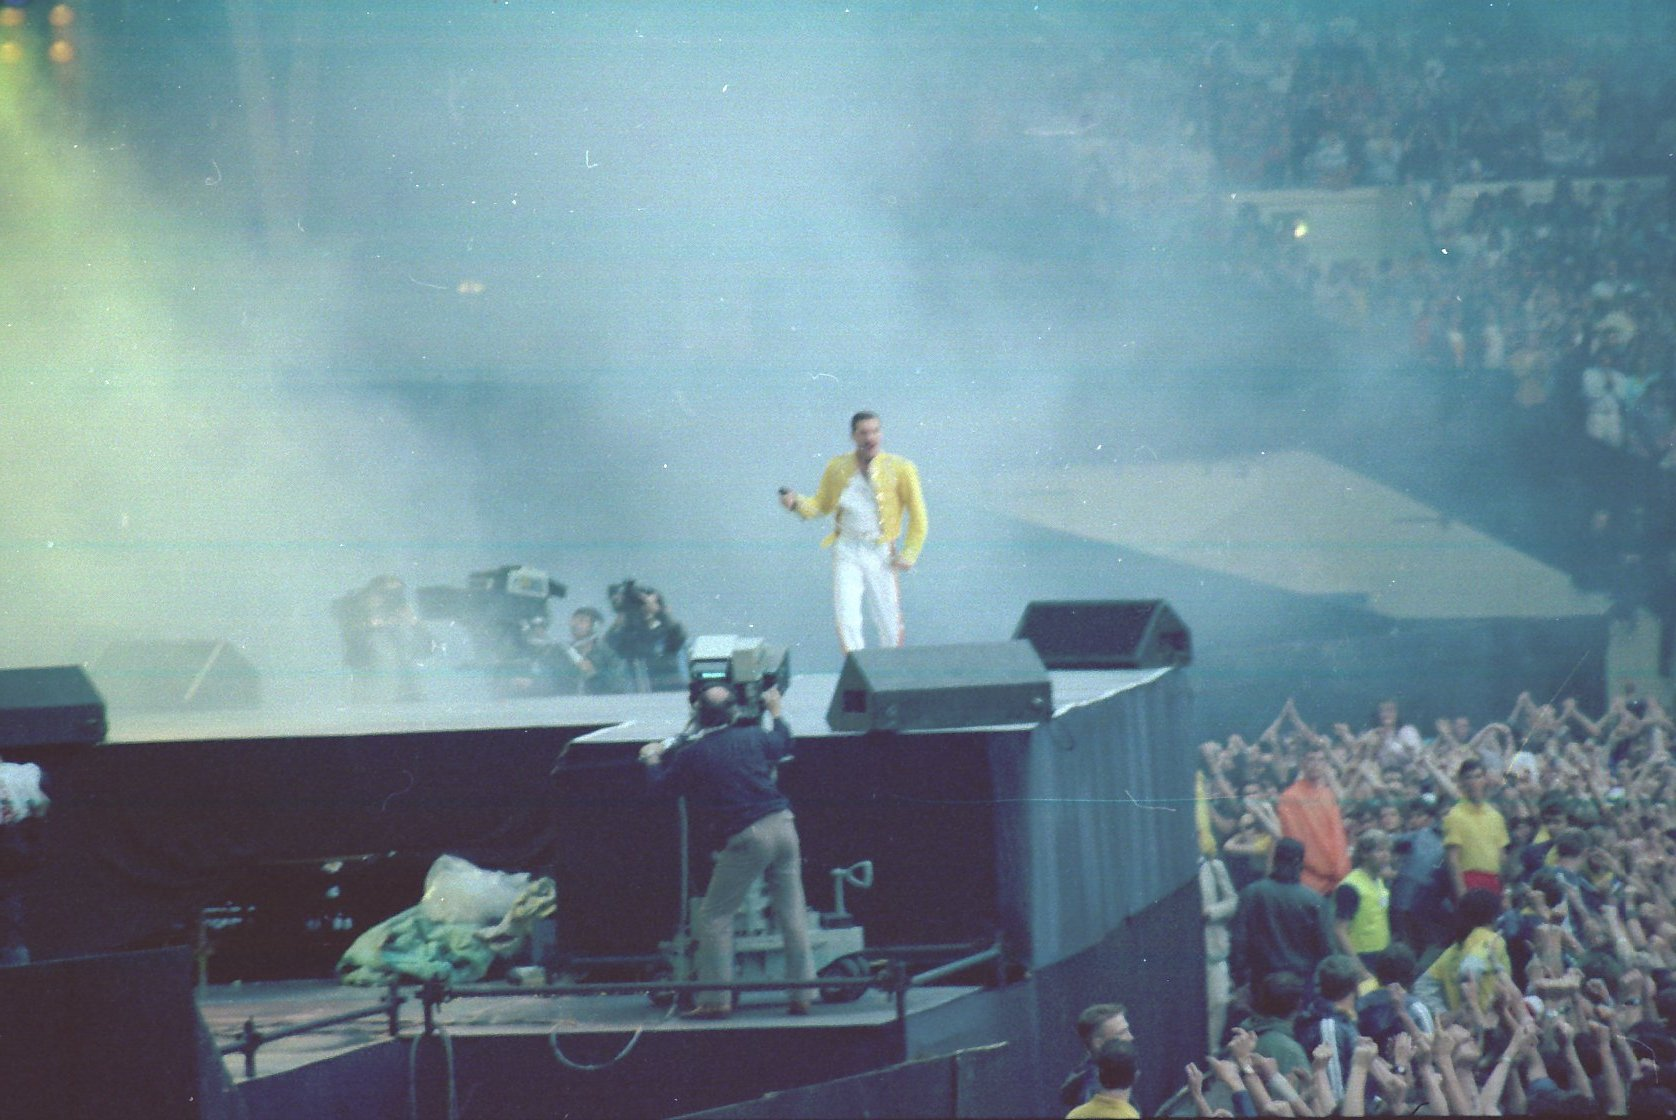 The second night at Wembley Stadium is probably the most famous and well-documented concert of Queen's career. It was filmed by 15 cameras with the initial ...